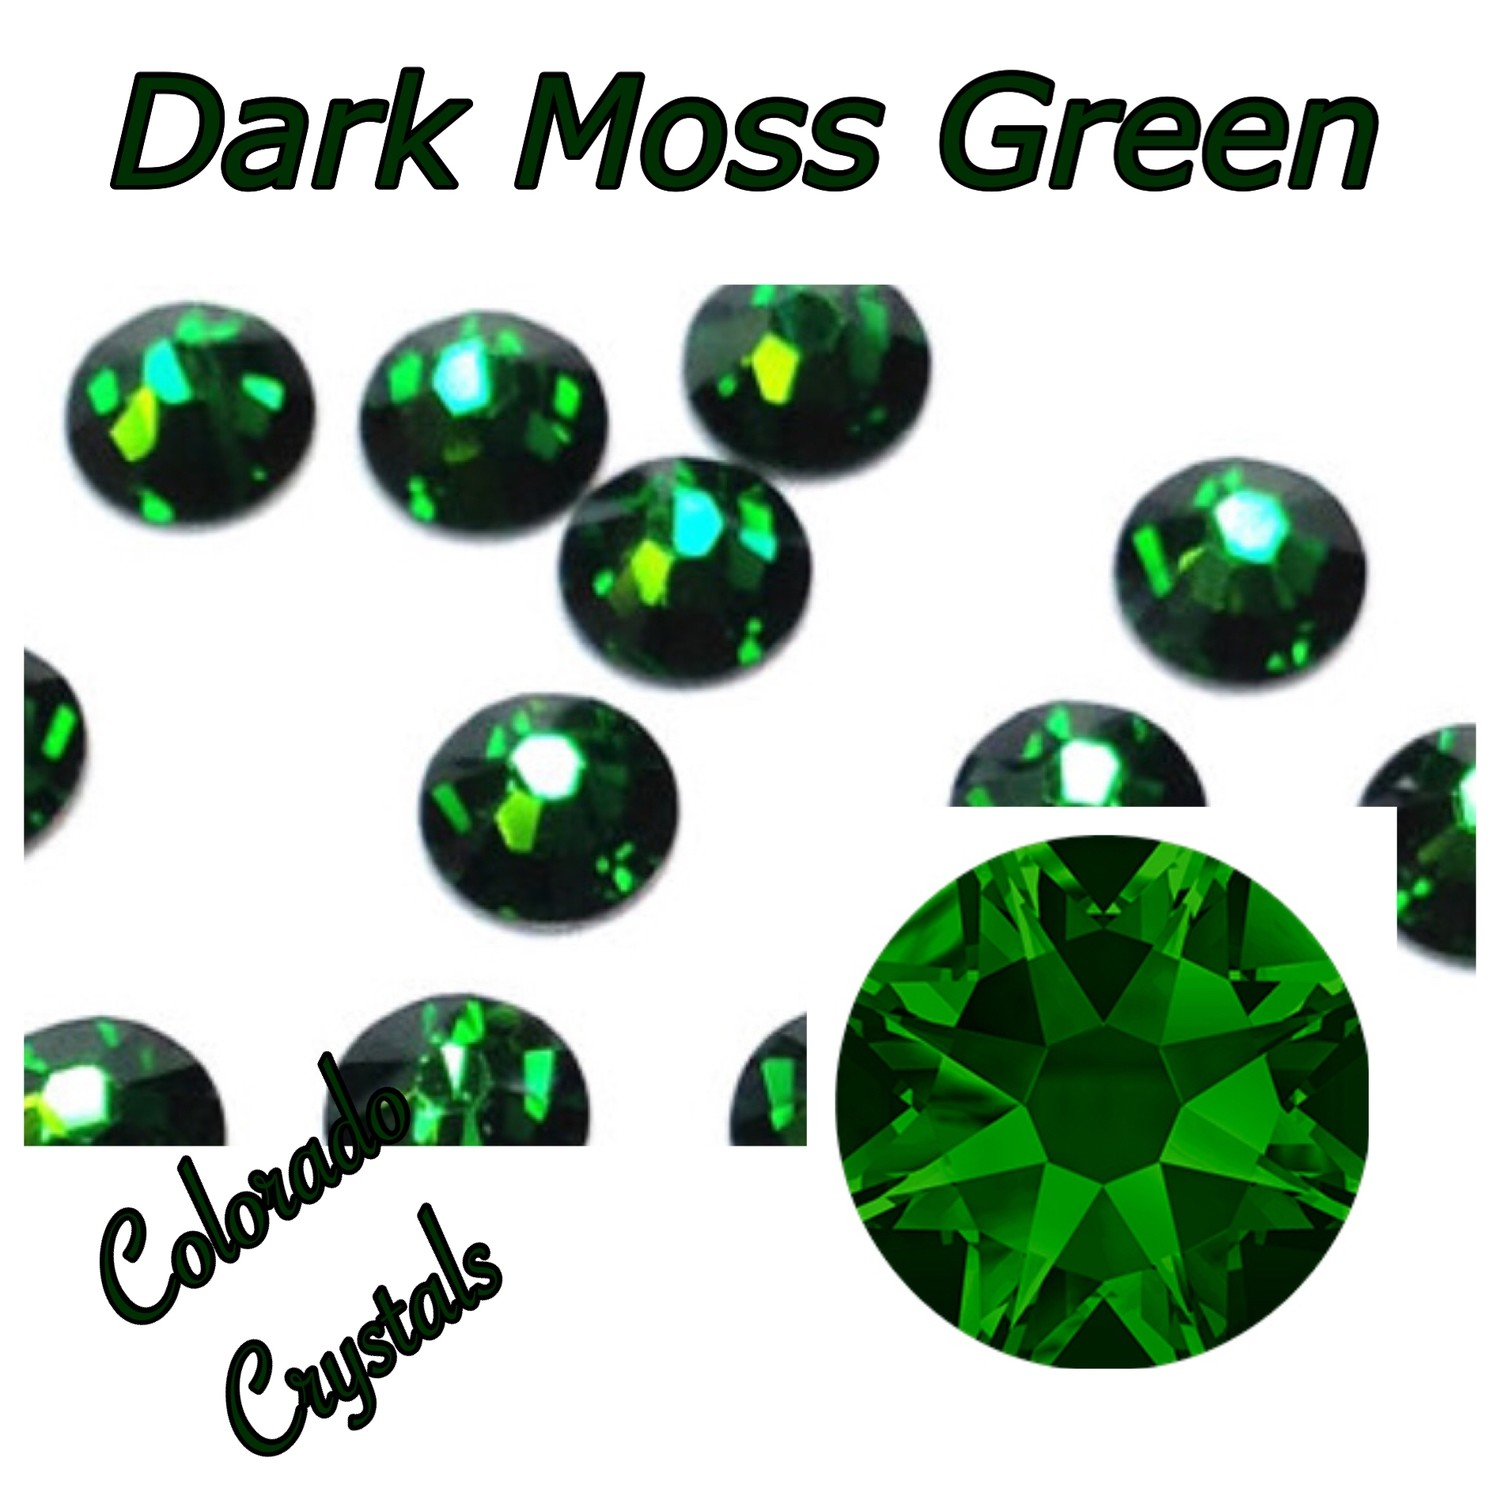 Dark Moss Green 9ss 2058 Limited Swarovski Clearance Crystals